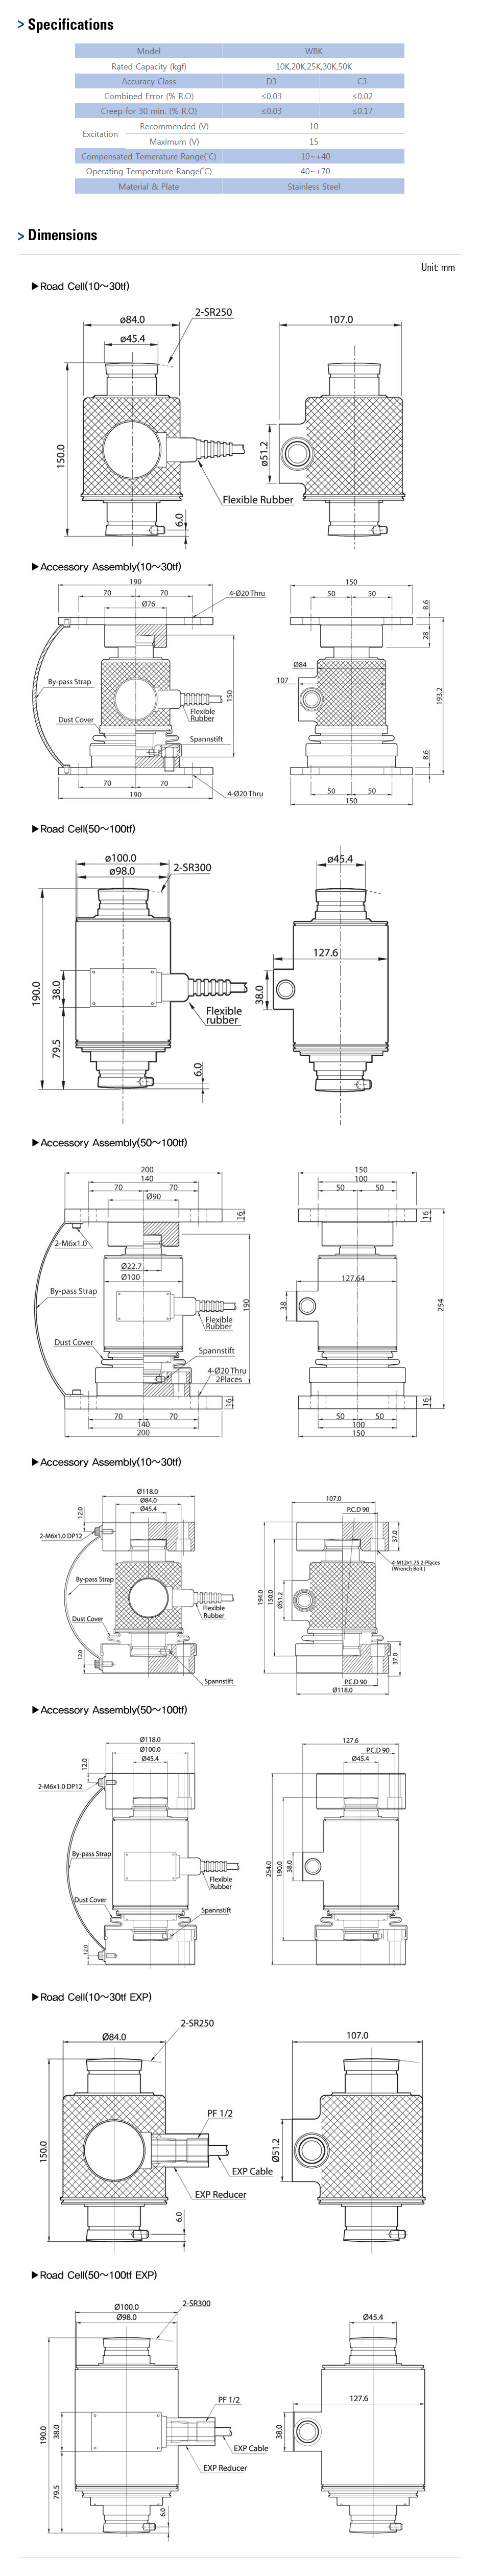 CAS Load Cell - Truck & Tank Weighing Type  4